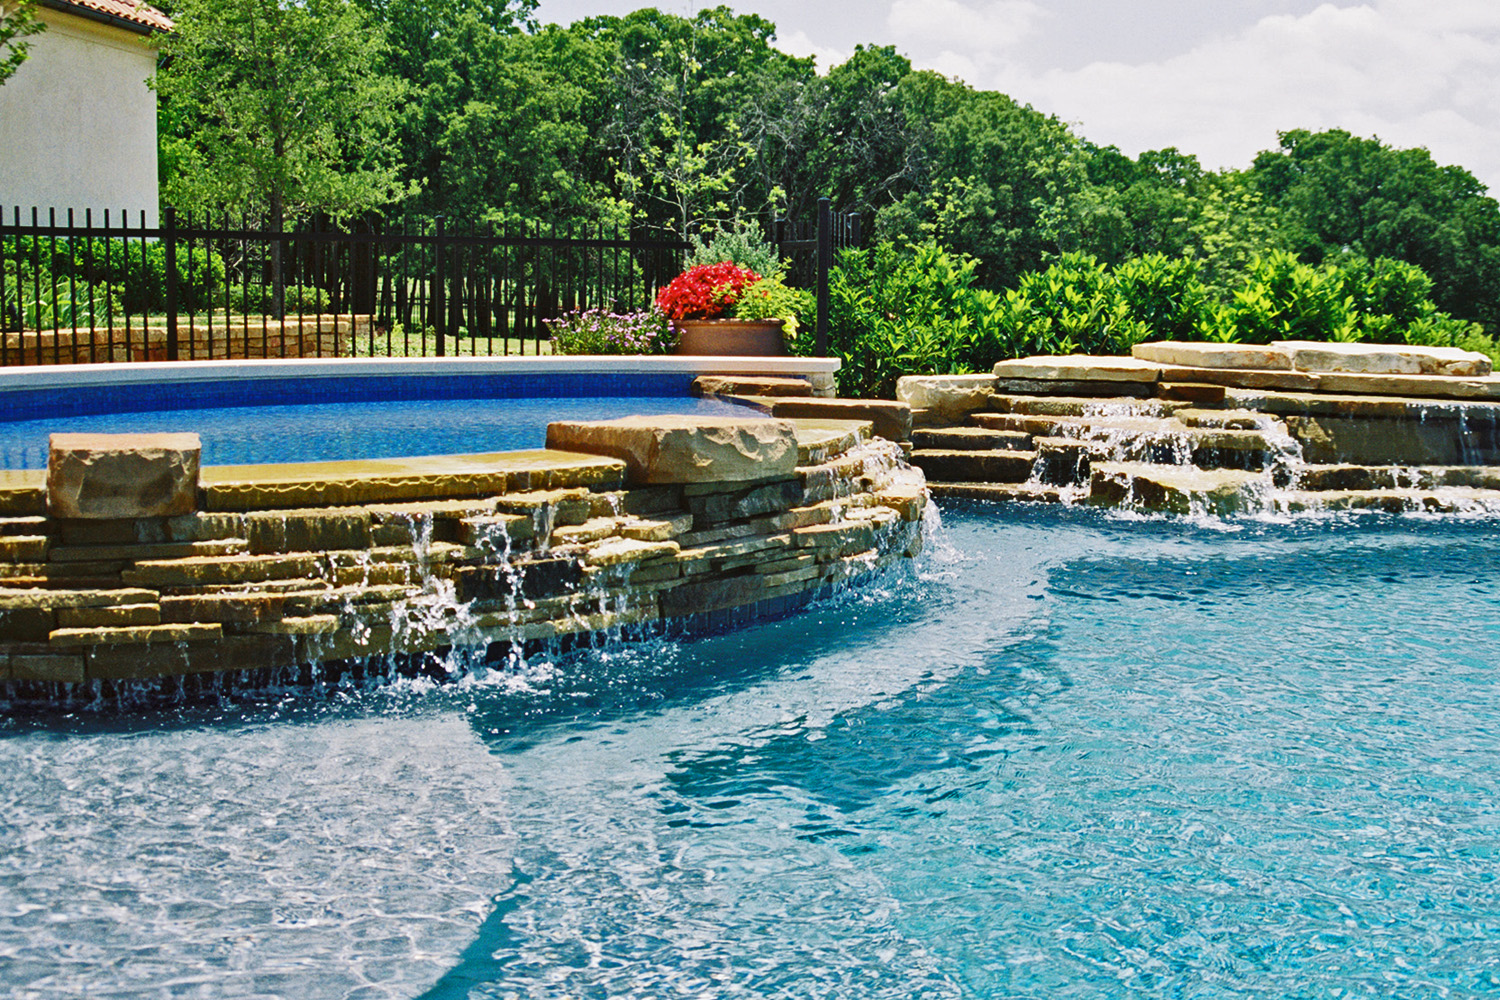 LUXURY SWIMMING POOLS - We specialize in the construction of luxury swimming pools, spas, fountains & water features that create a dramatic impact on your property and create a personal resort and oasis for you and your family.